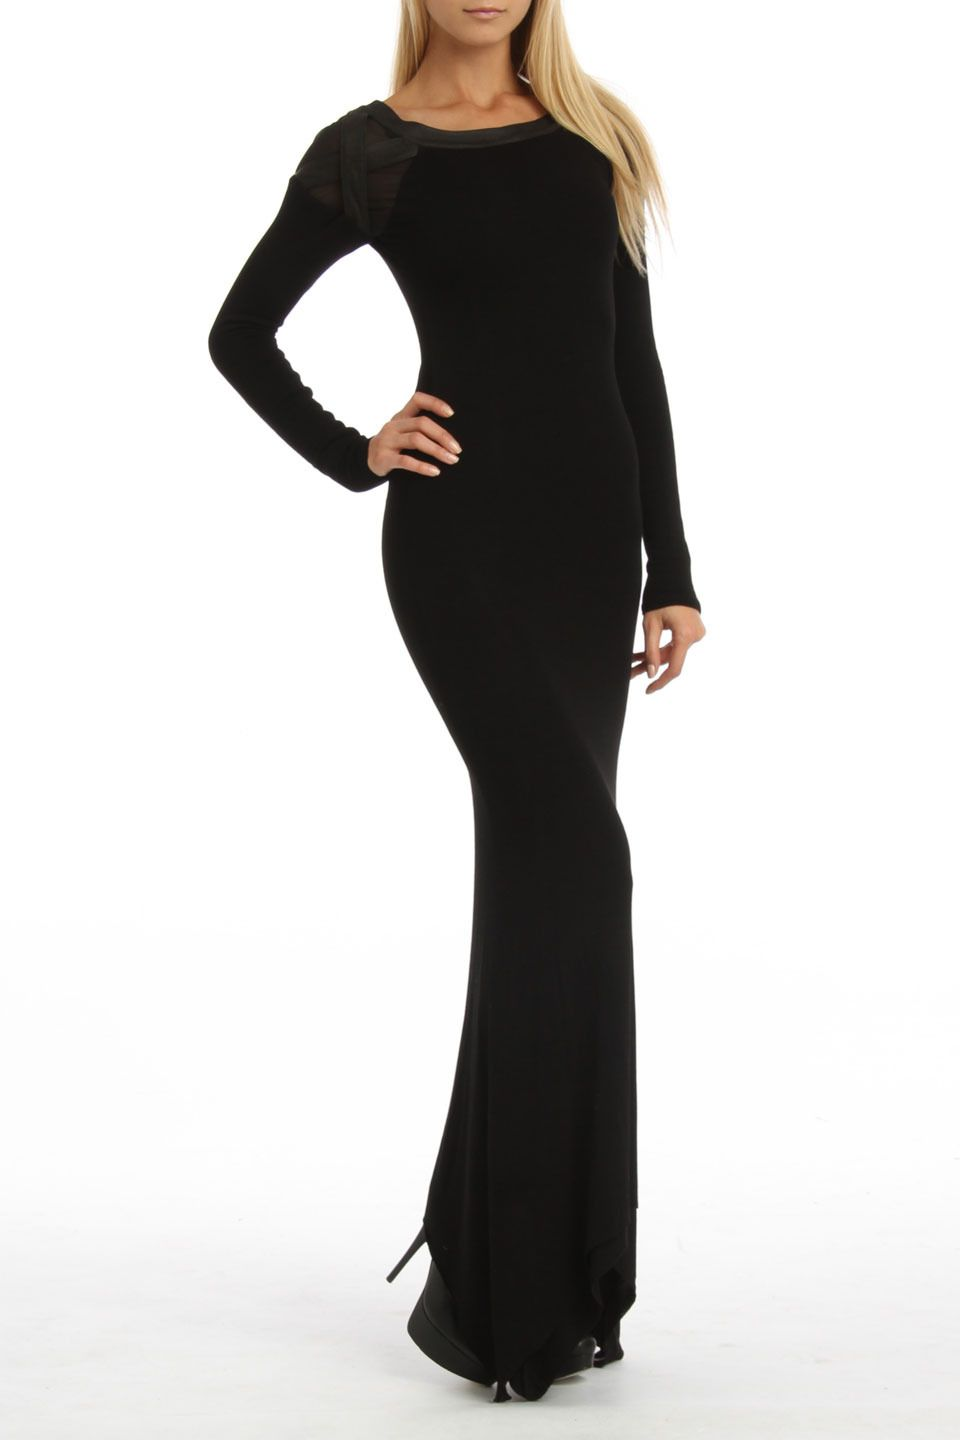 Black full sleeve maxi dress add a belt some jewelry